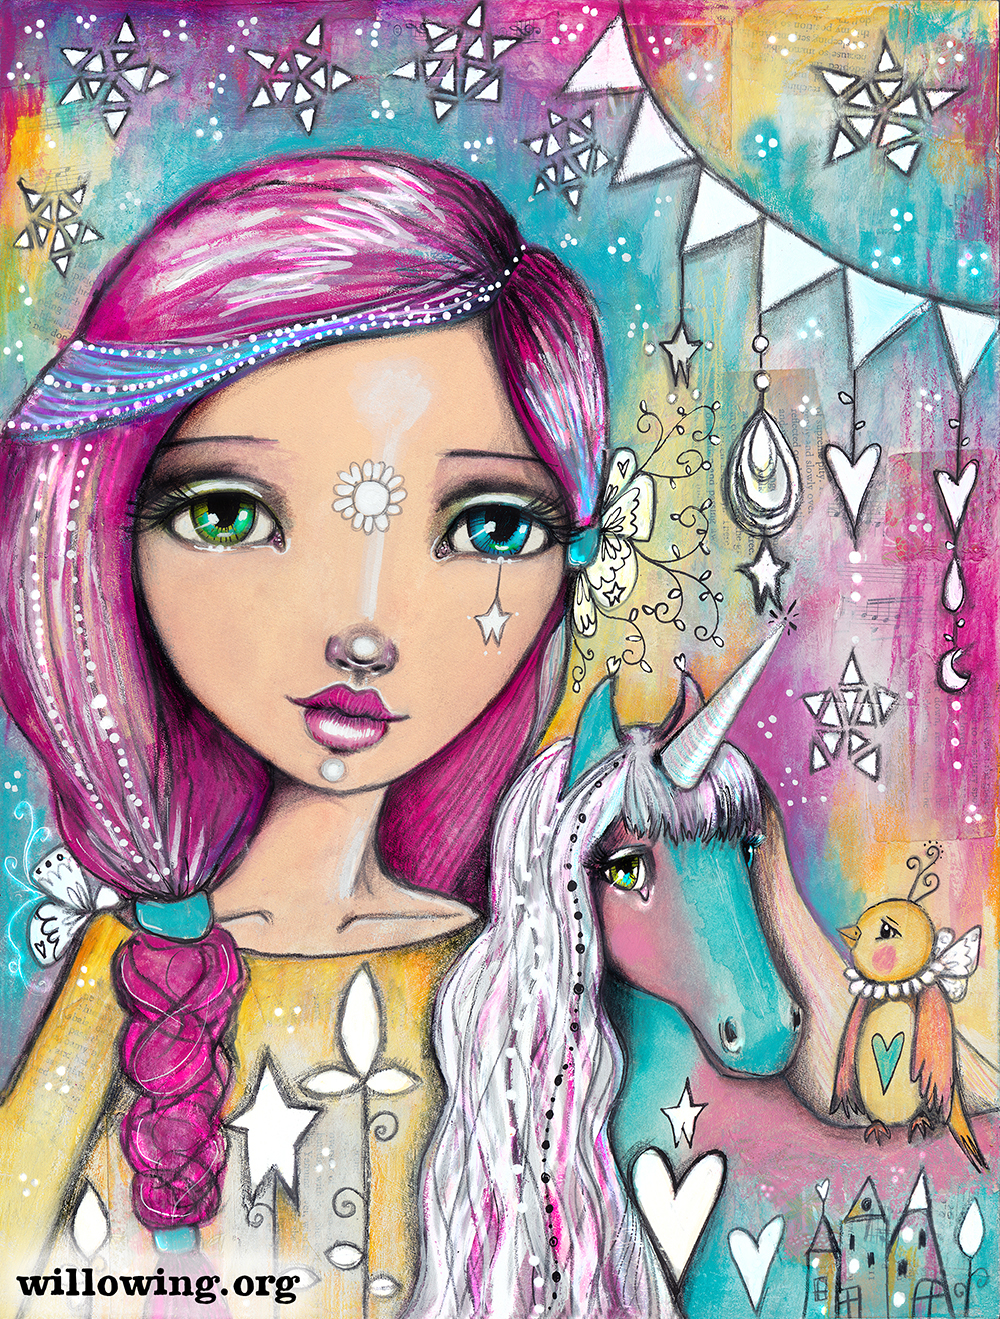 Unicorn Girl Pictures : unicorn, pictures, Unicorn, Print, Willowing